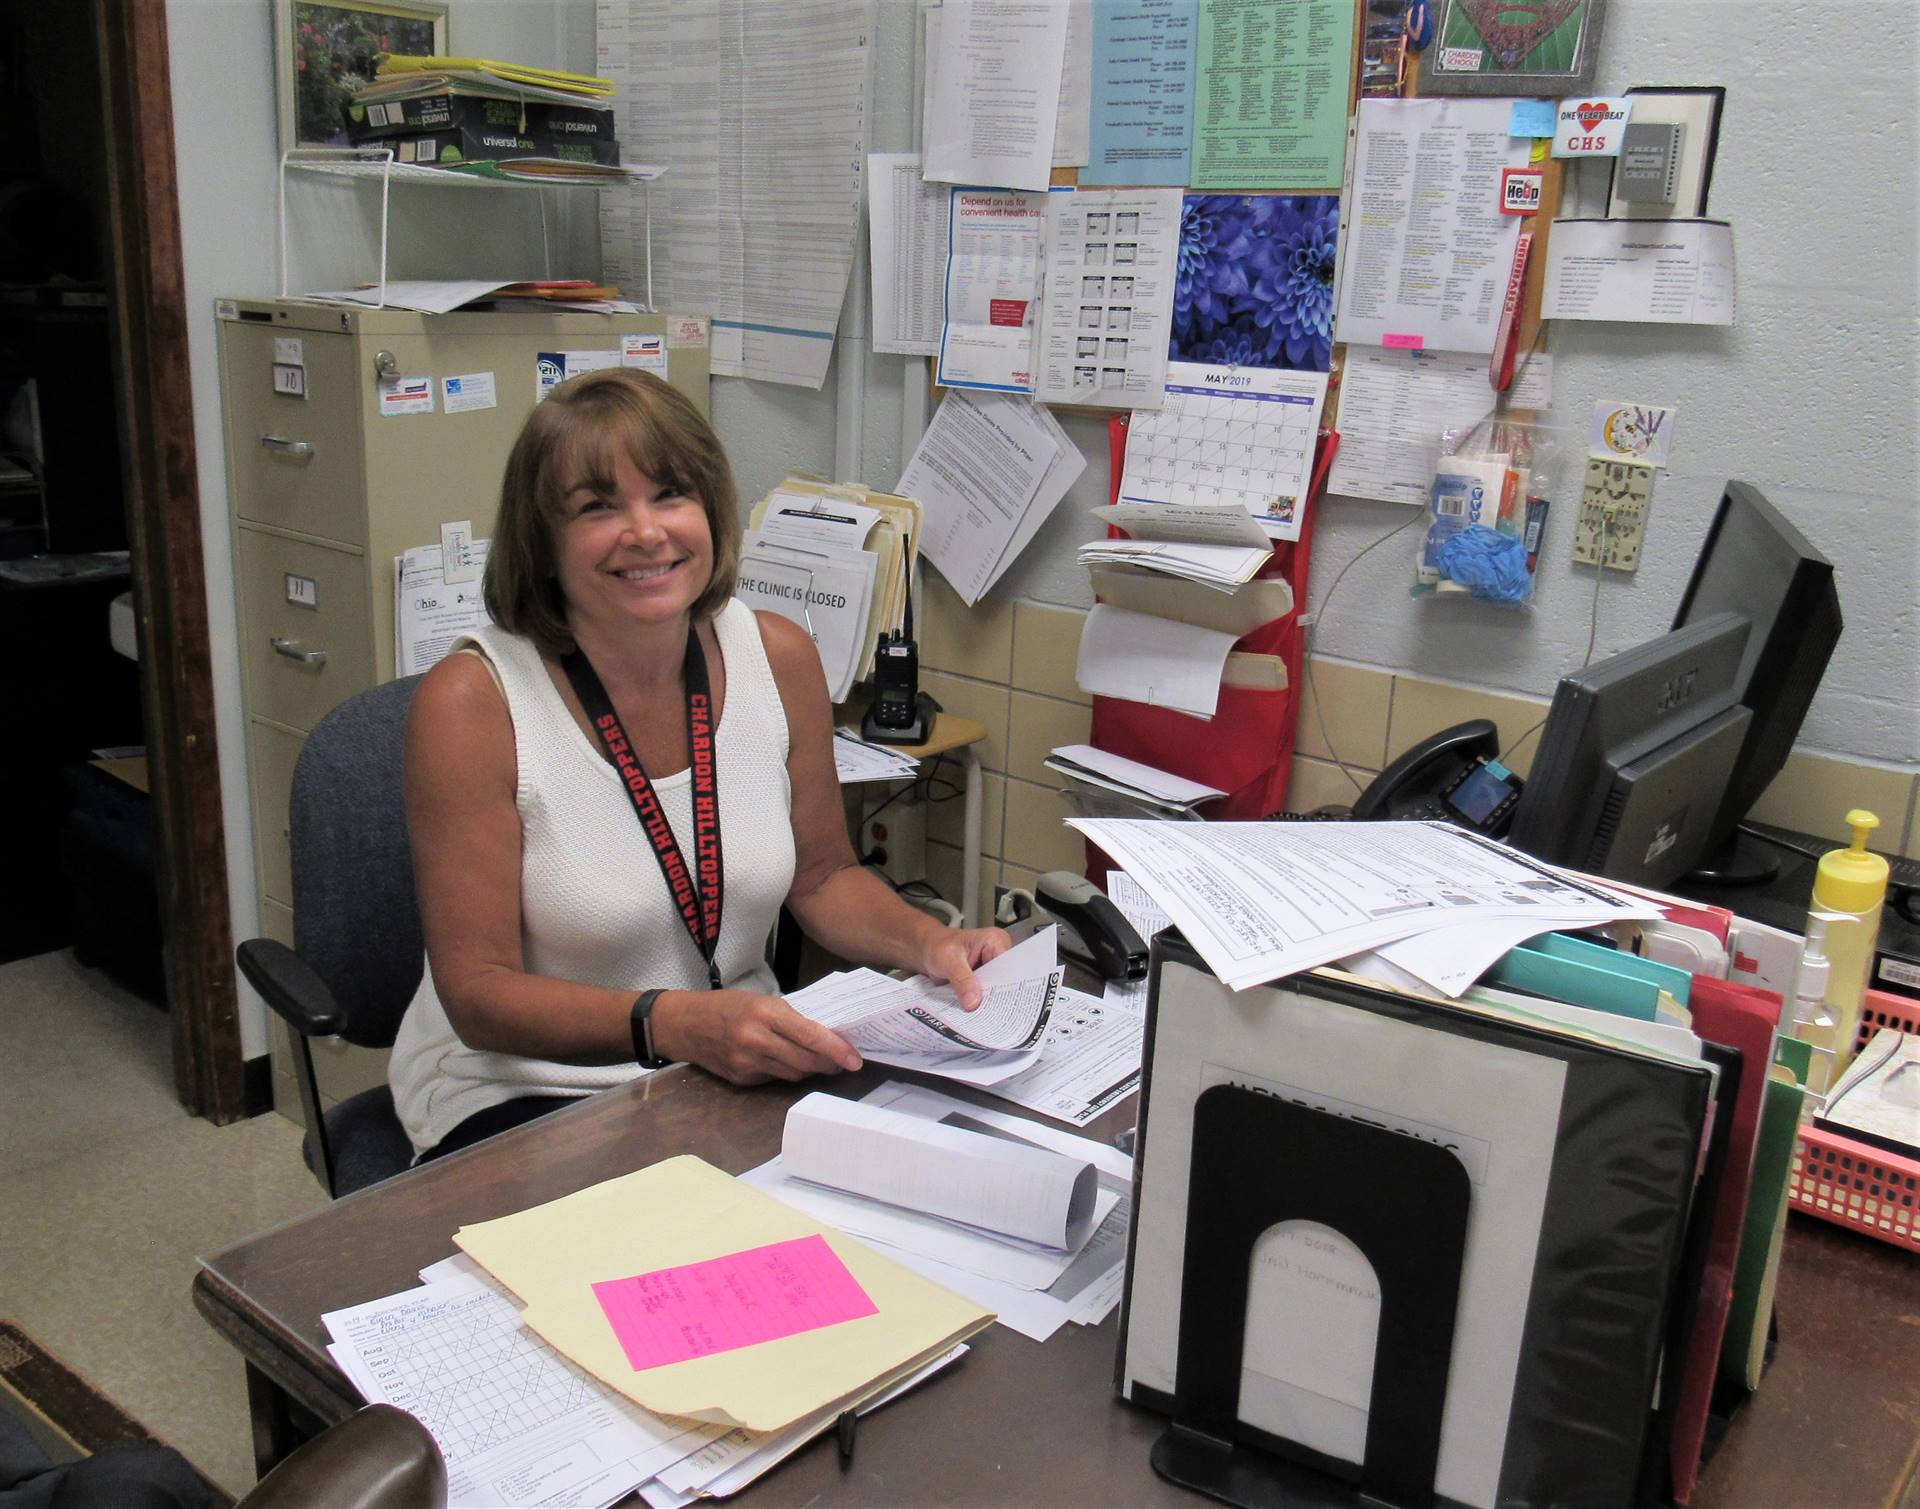 Head School Nurse Jan Hoffmann working at her desk.